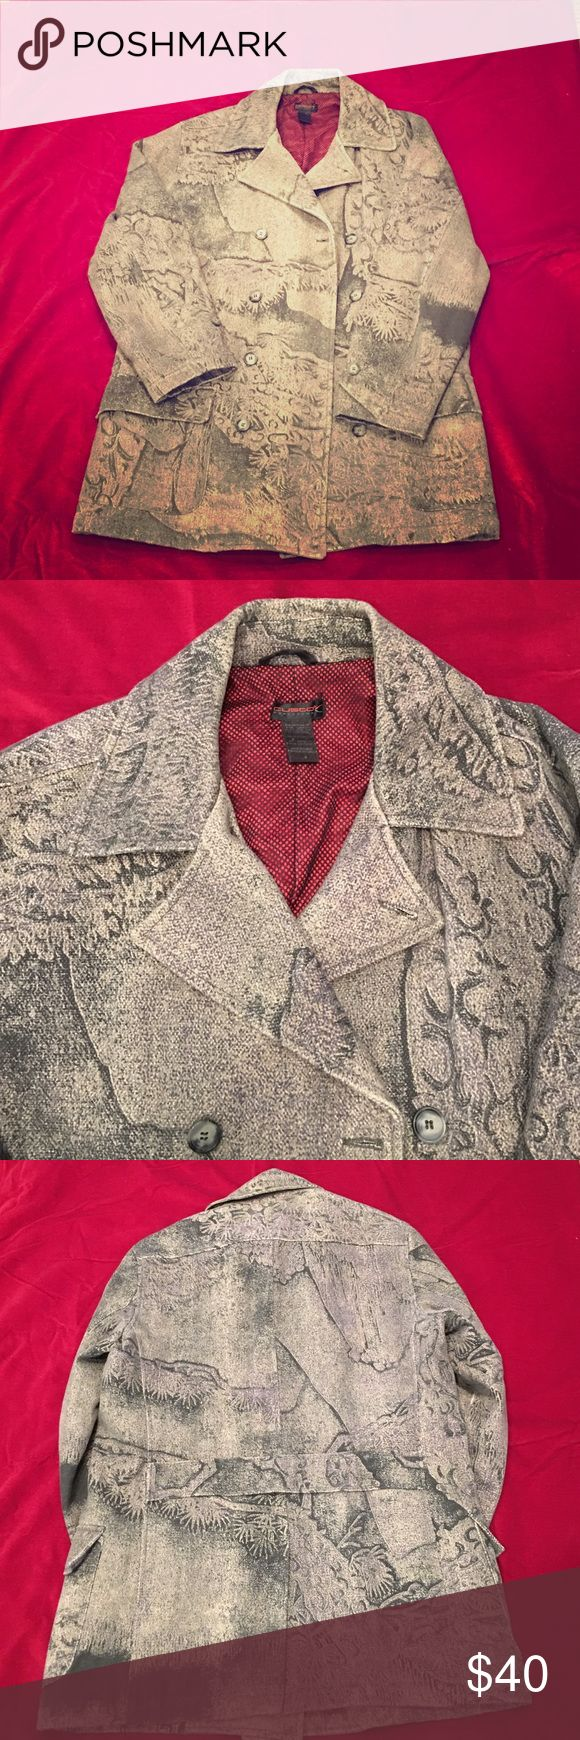 Men's Custo Barcelona Double Breasted Pea Coat CUSTO men's size 4 so XL. Very good condition, with a few holes only inside pockets, that you cannot see. 100% cotton! With polyester lining in mesh RED. And GREAT CUSTO PRINT! Fun but neutral. Custo Barcelona Jackets & Coats